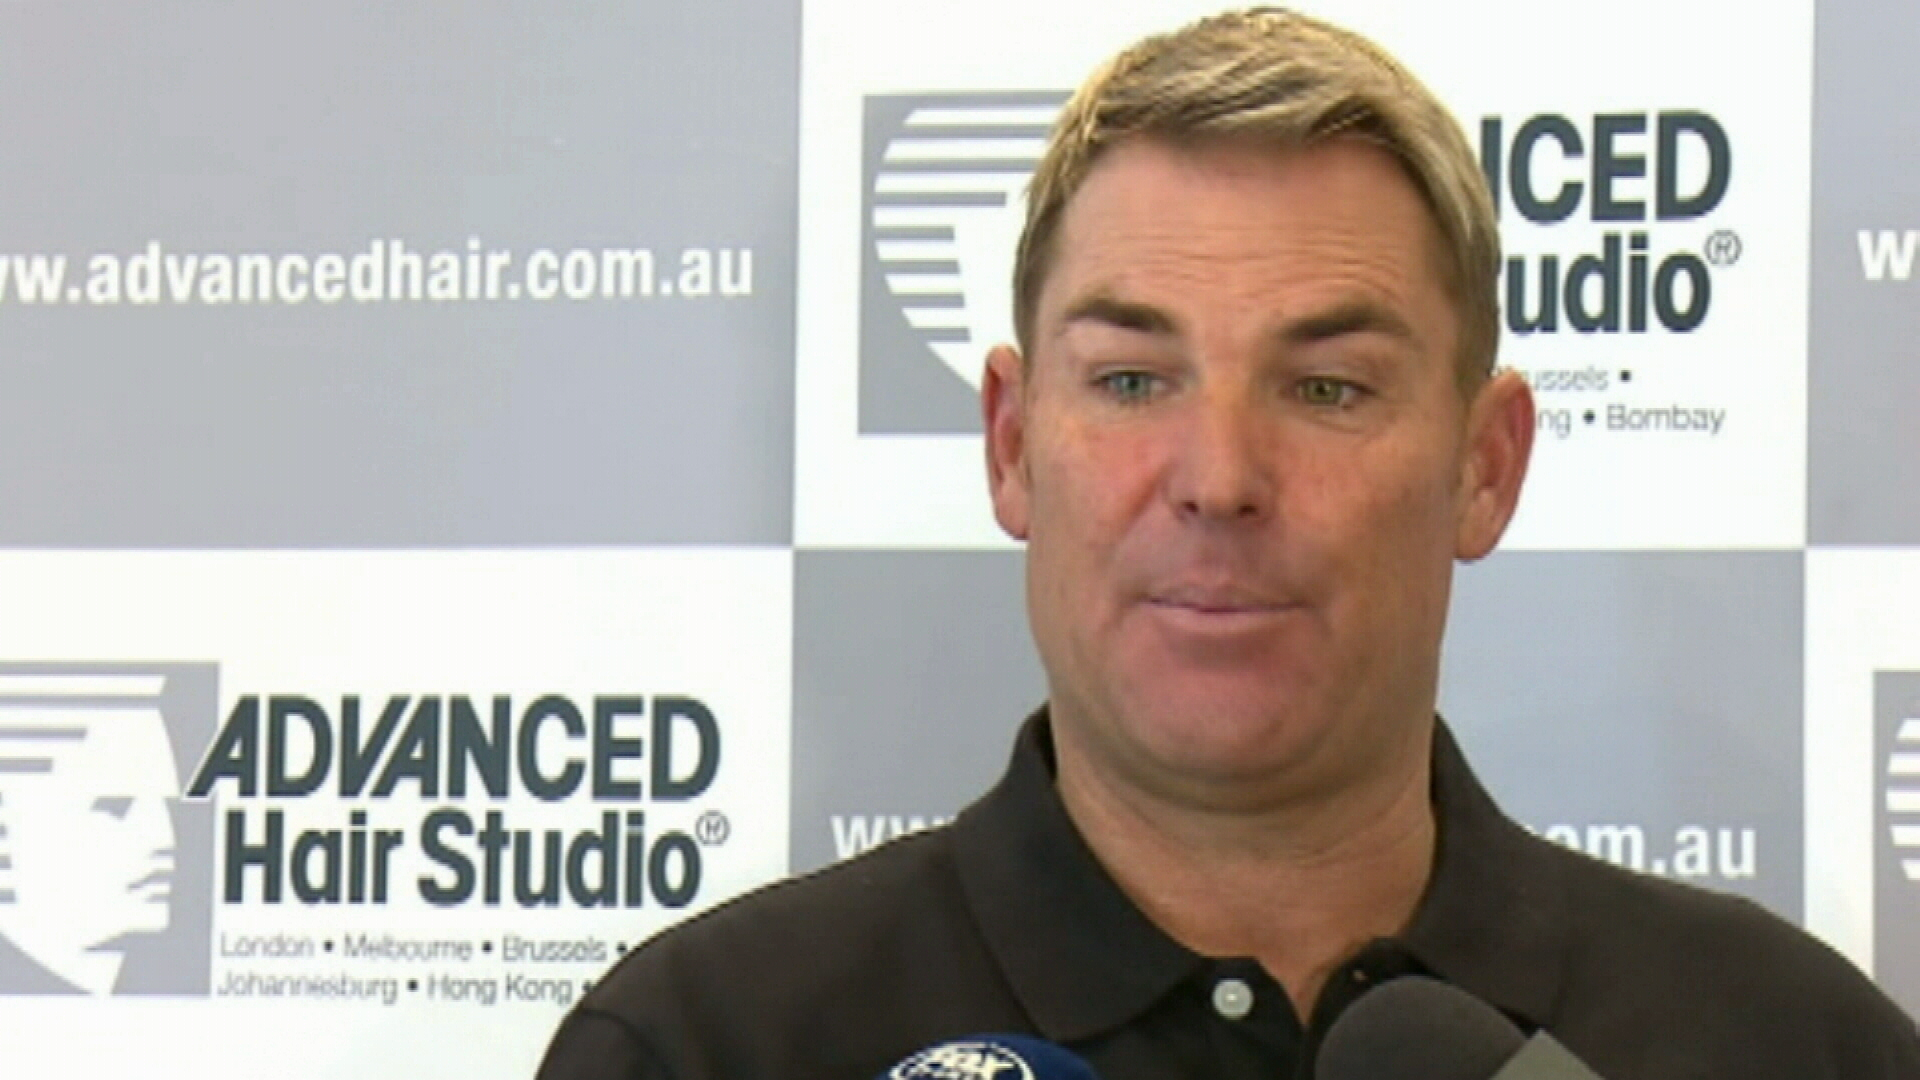 Shane Warne accused of attacking woman in London